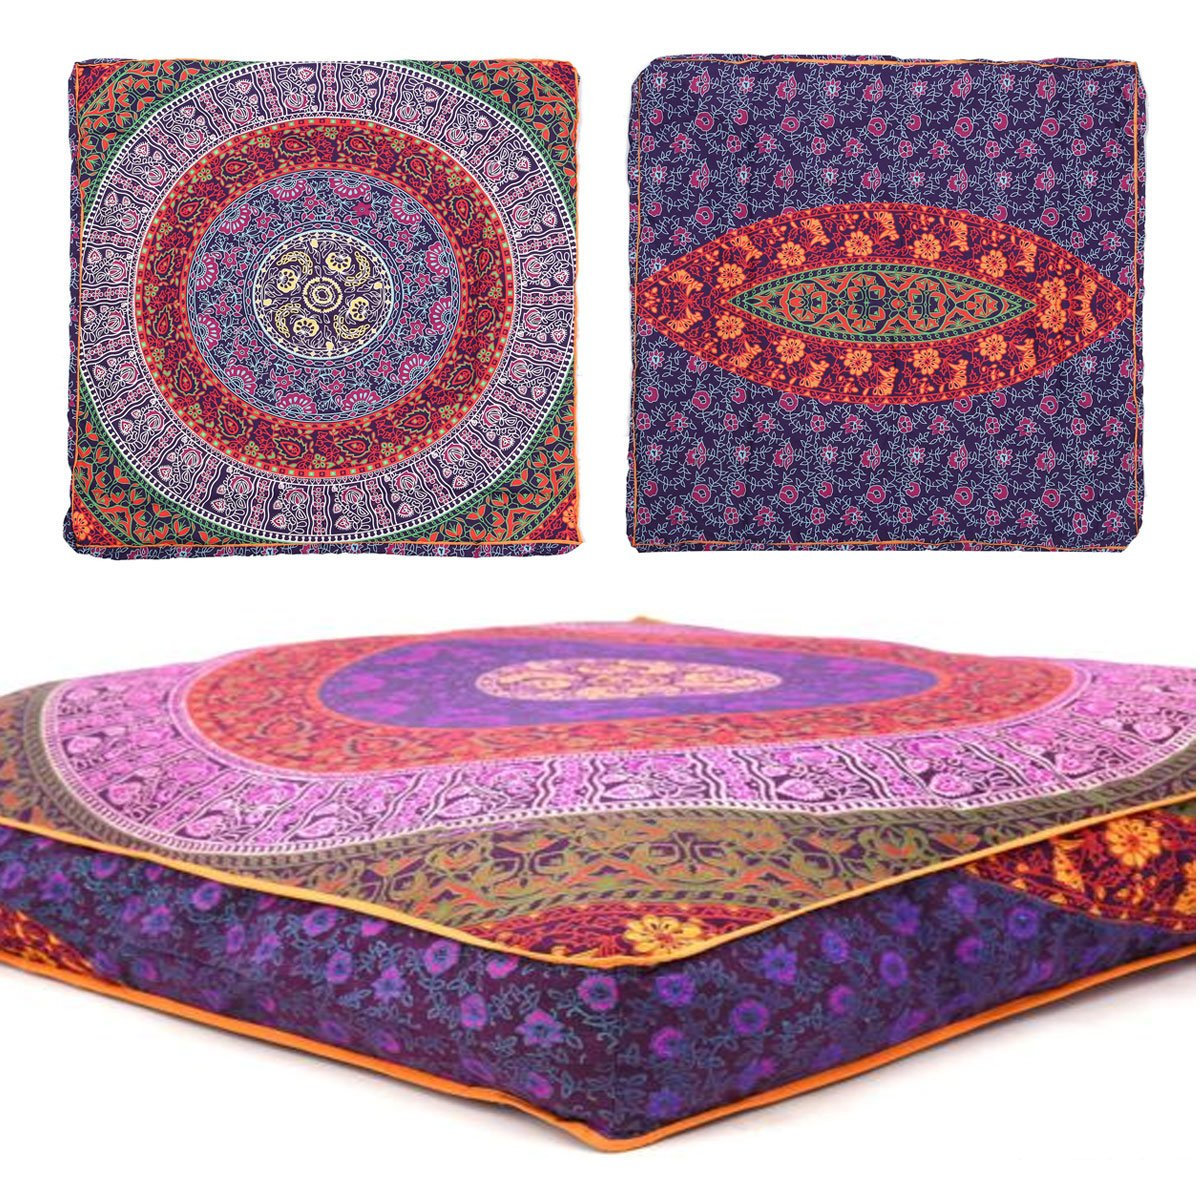 Third Eye Export - Indian Mandala Floor Pillow Square Ottoman Pouf Daybed Oversized Cushion Cover Cotton Seating Ottoman Poufs Dog/Pets Bed (Purple) by Third Eye Export